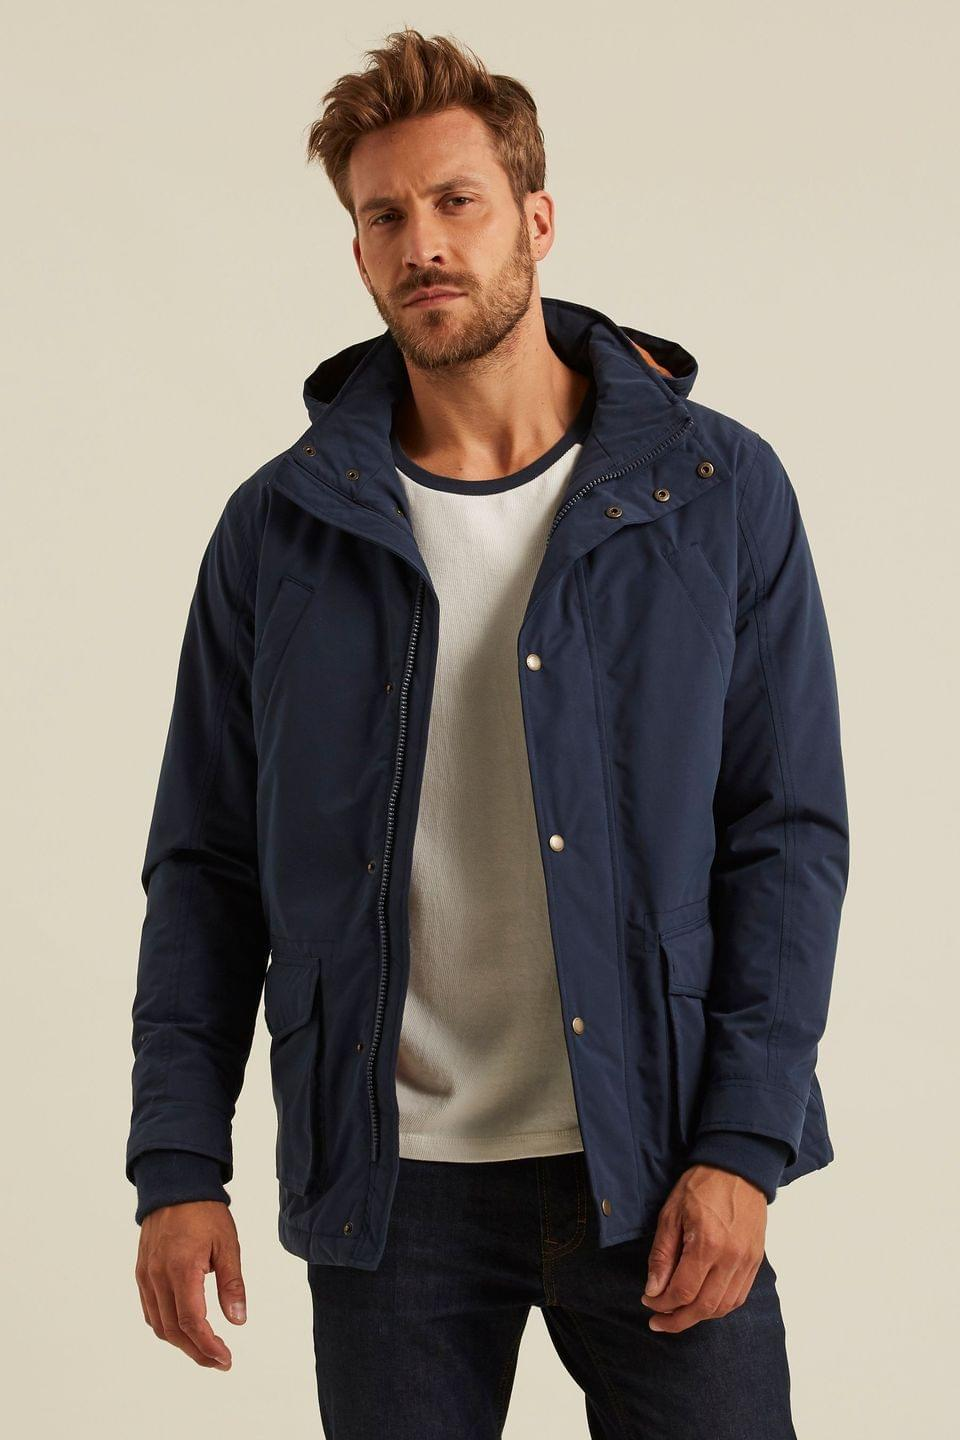 Men's FatFace Blue Performance Parka Jacket